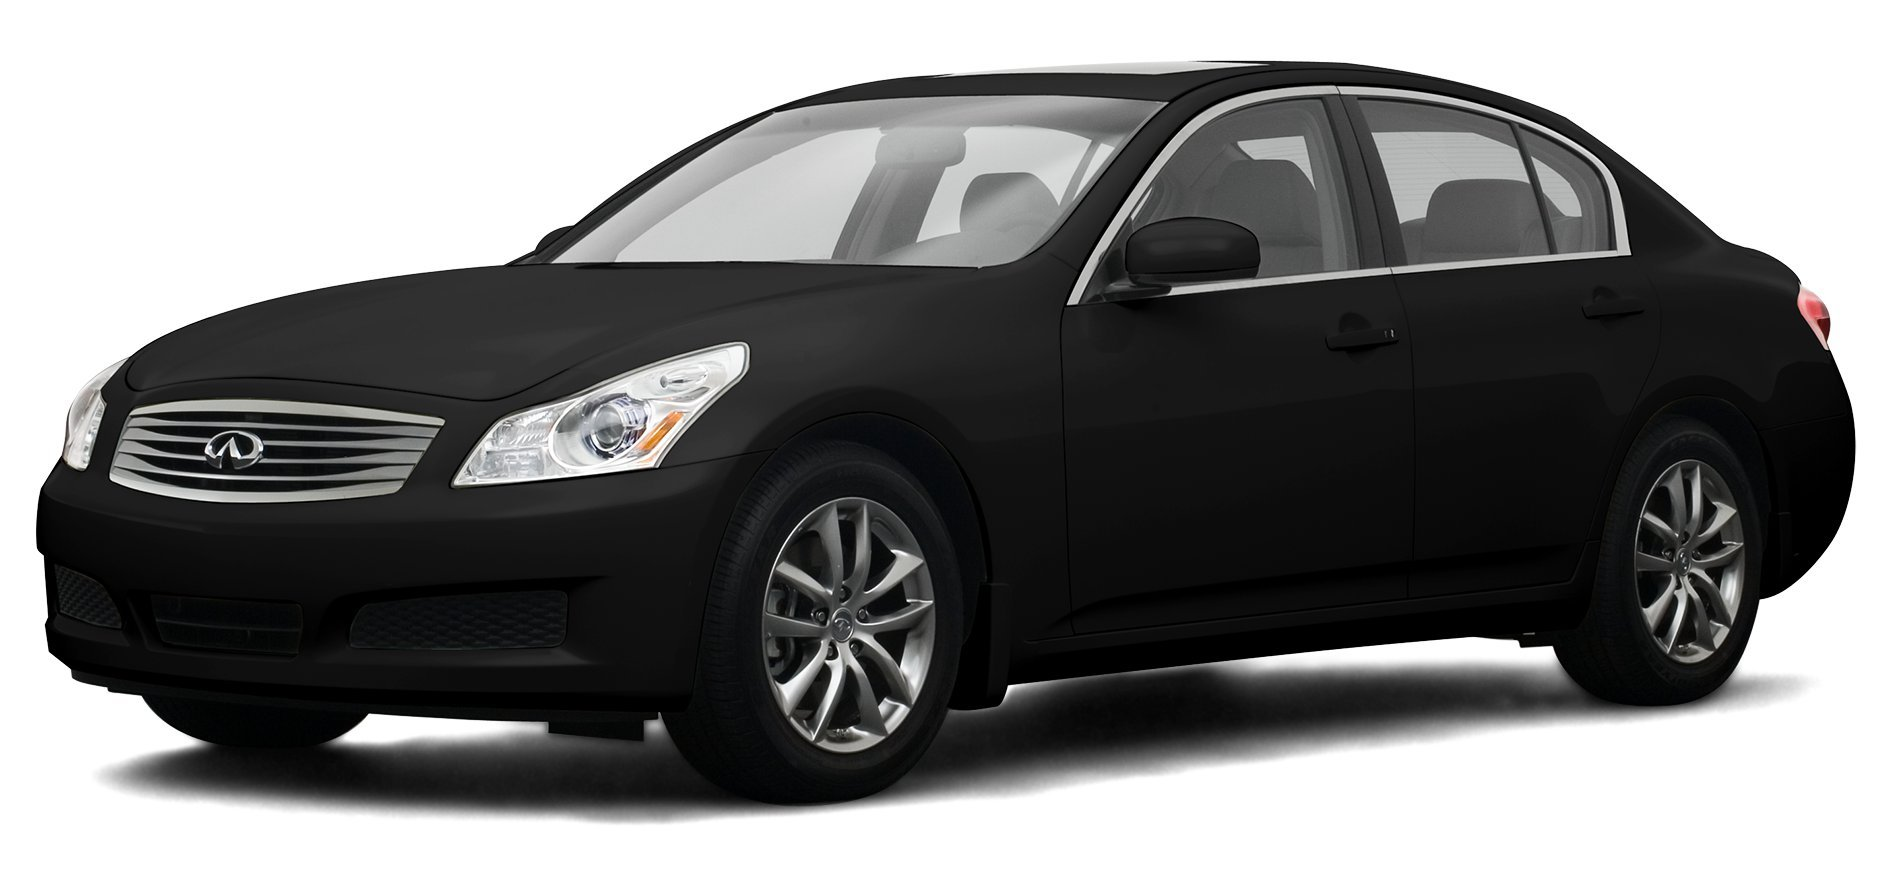 Amazon 2008 infiniti g35 reviews images and specs vehicles 2008 infiniti g35 base 4 door rear wheel drive vanachro Gallery